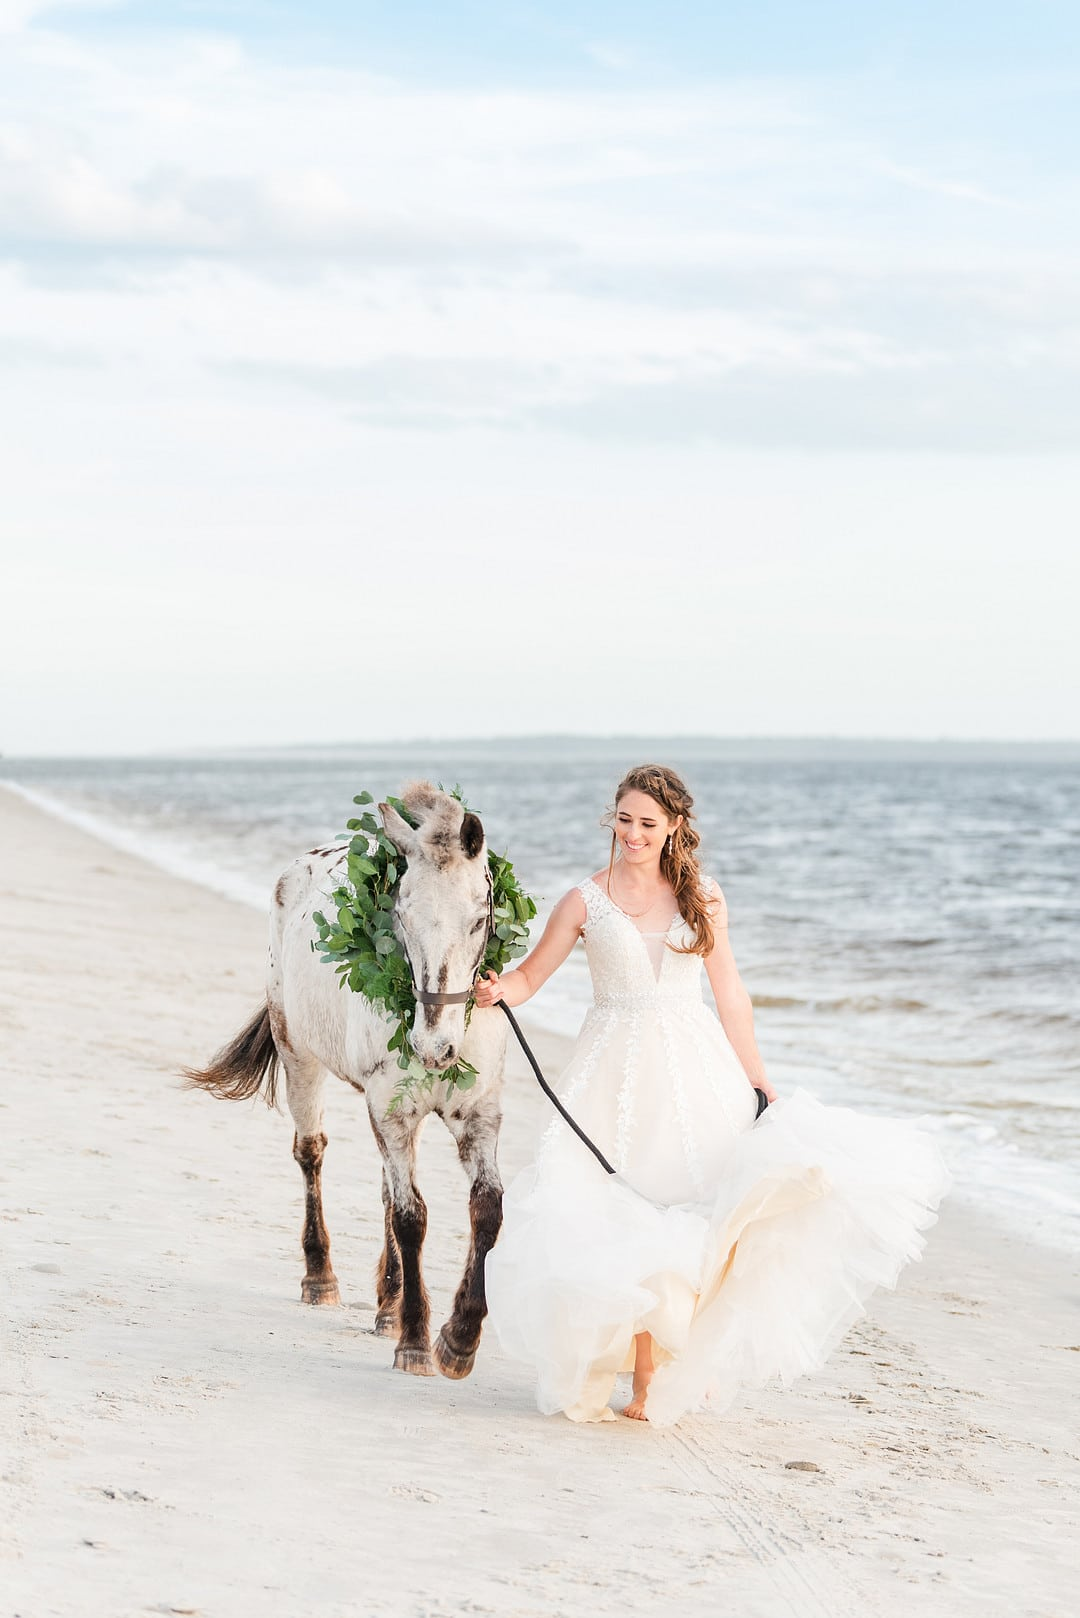 Romantic, Spring Styled Wedding with Horses on the Beach_Christine Austin Photography_©christineaustinphotography_2021_RomanticBeachStyledShoot_Horses_70_low